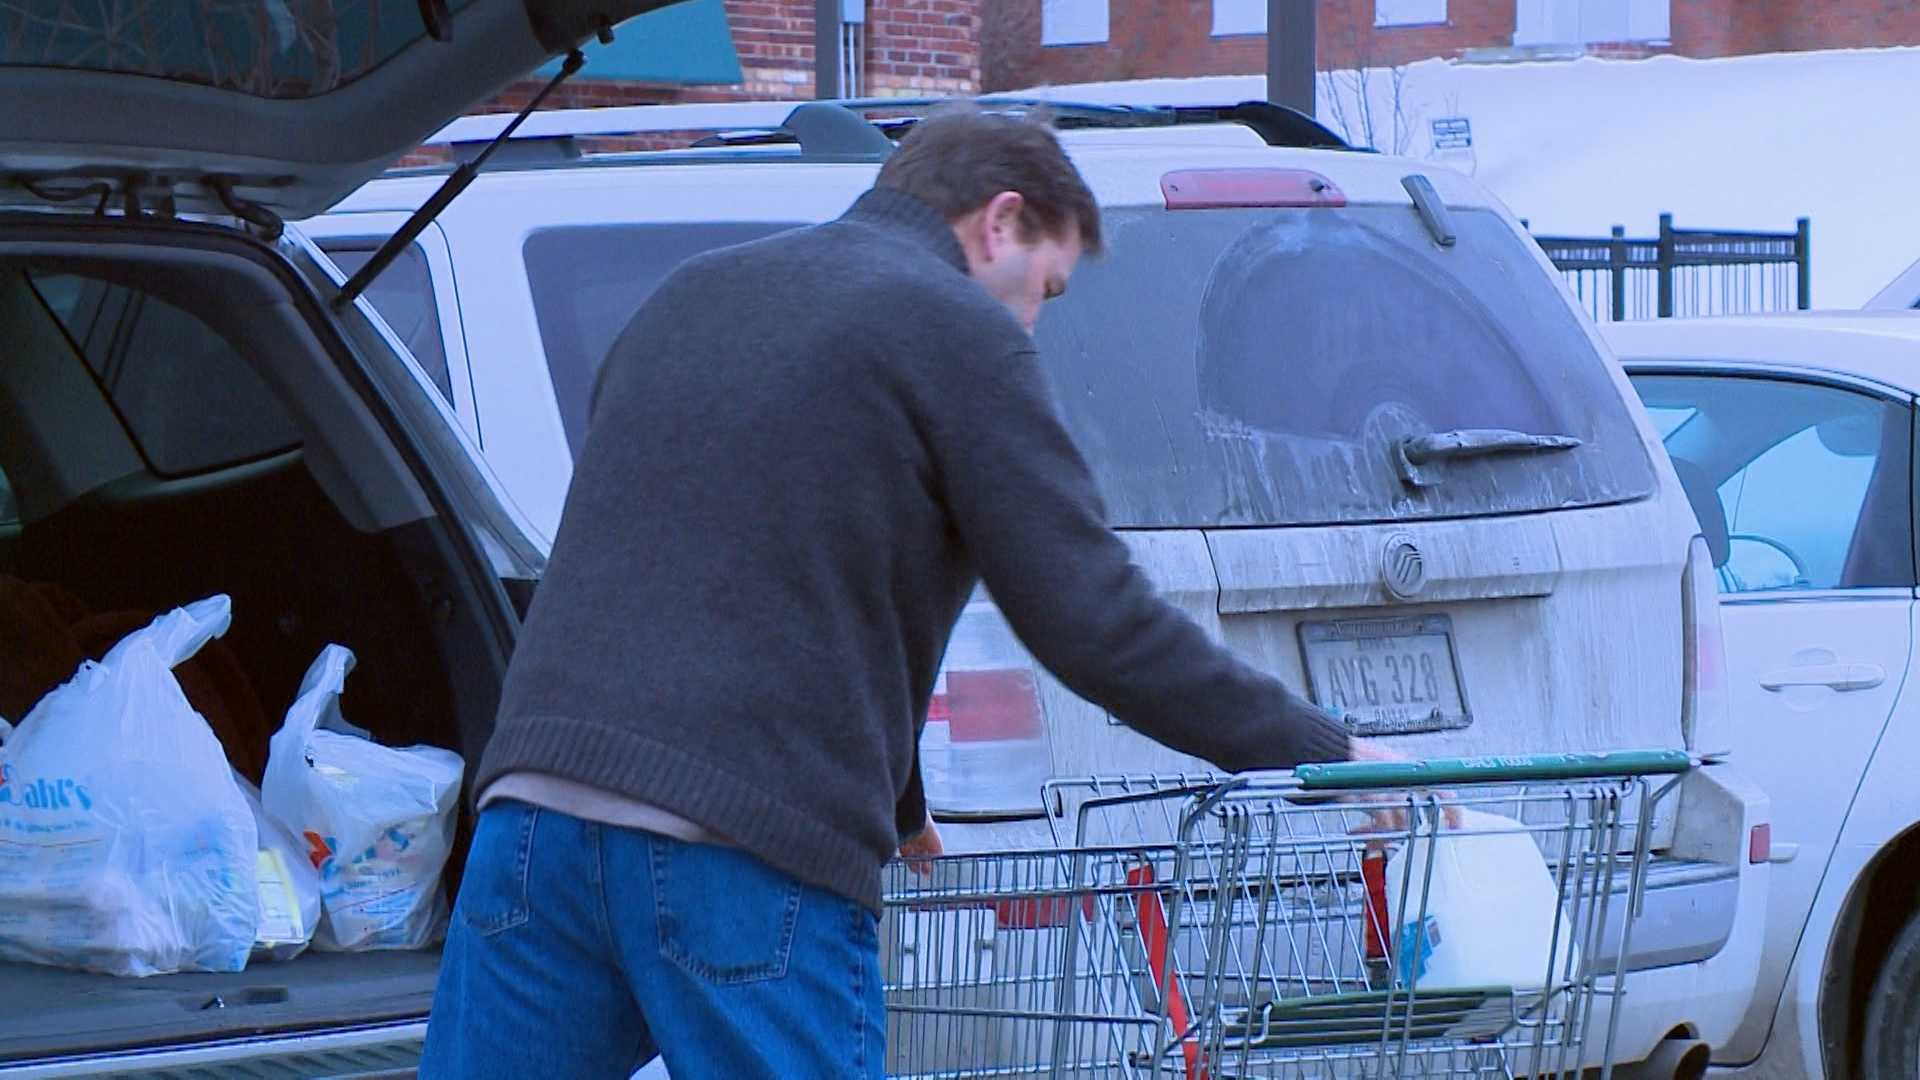 Customers flood grocers, hardware stores before wintery blast